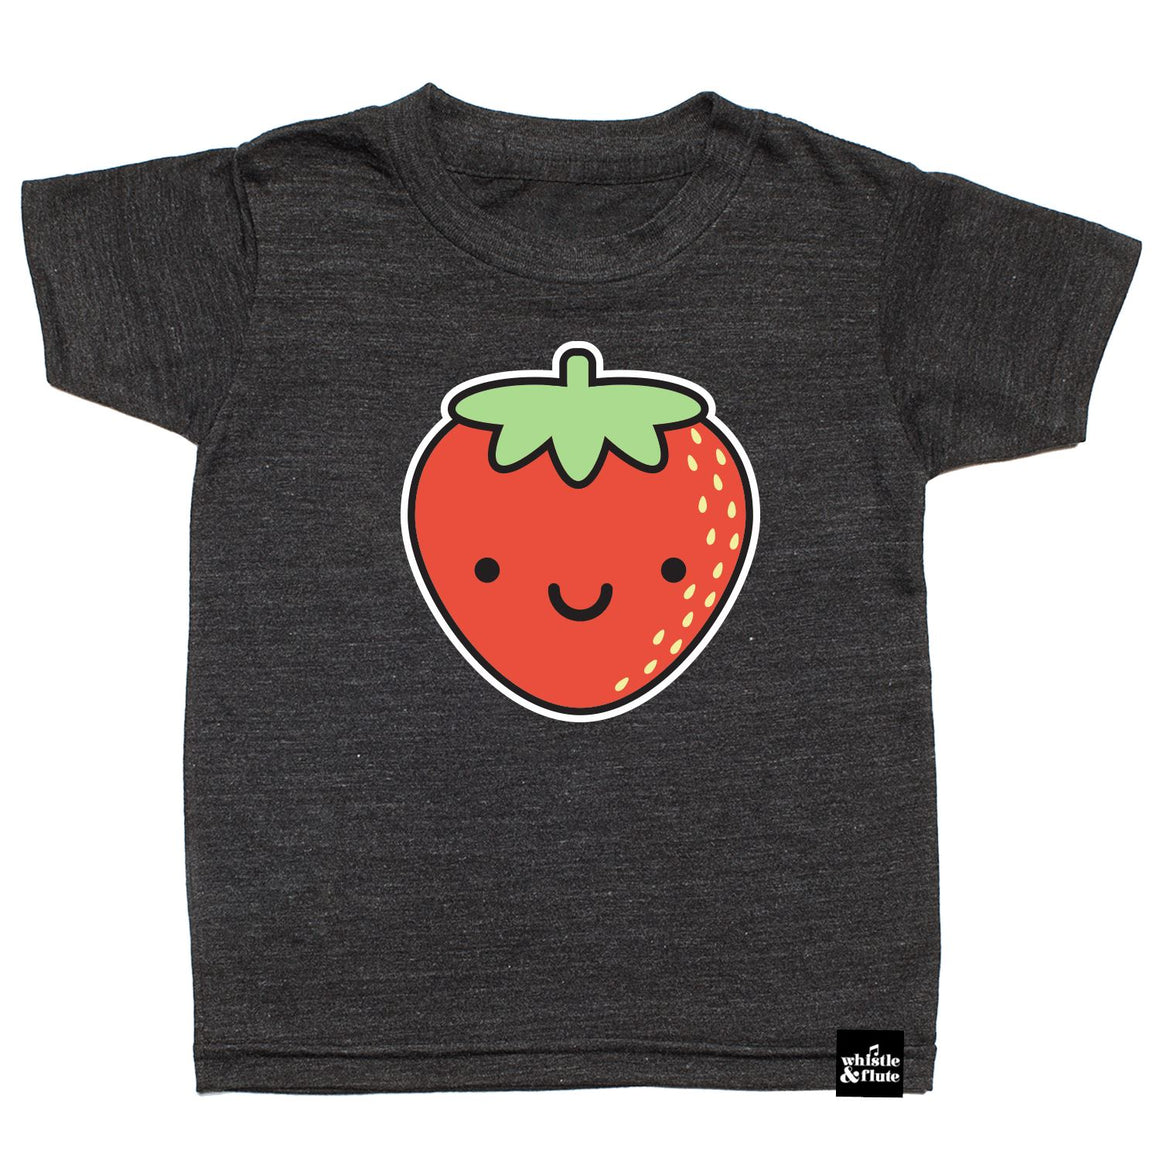 Whistle & Flute - Kawaii Strawberry T-Shirt Short Sleeve Shirts Whistle & Flute